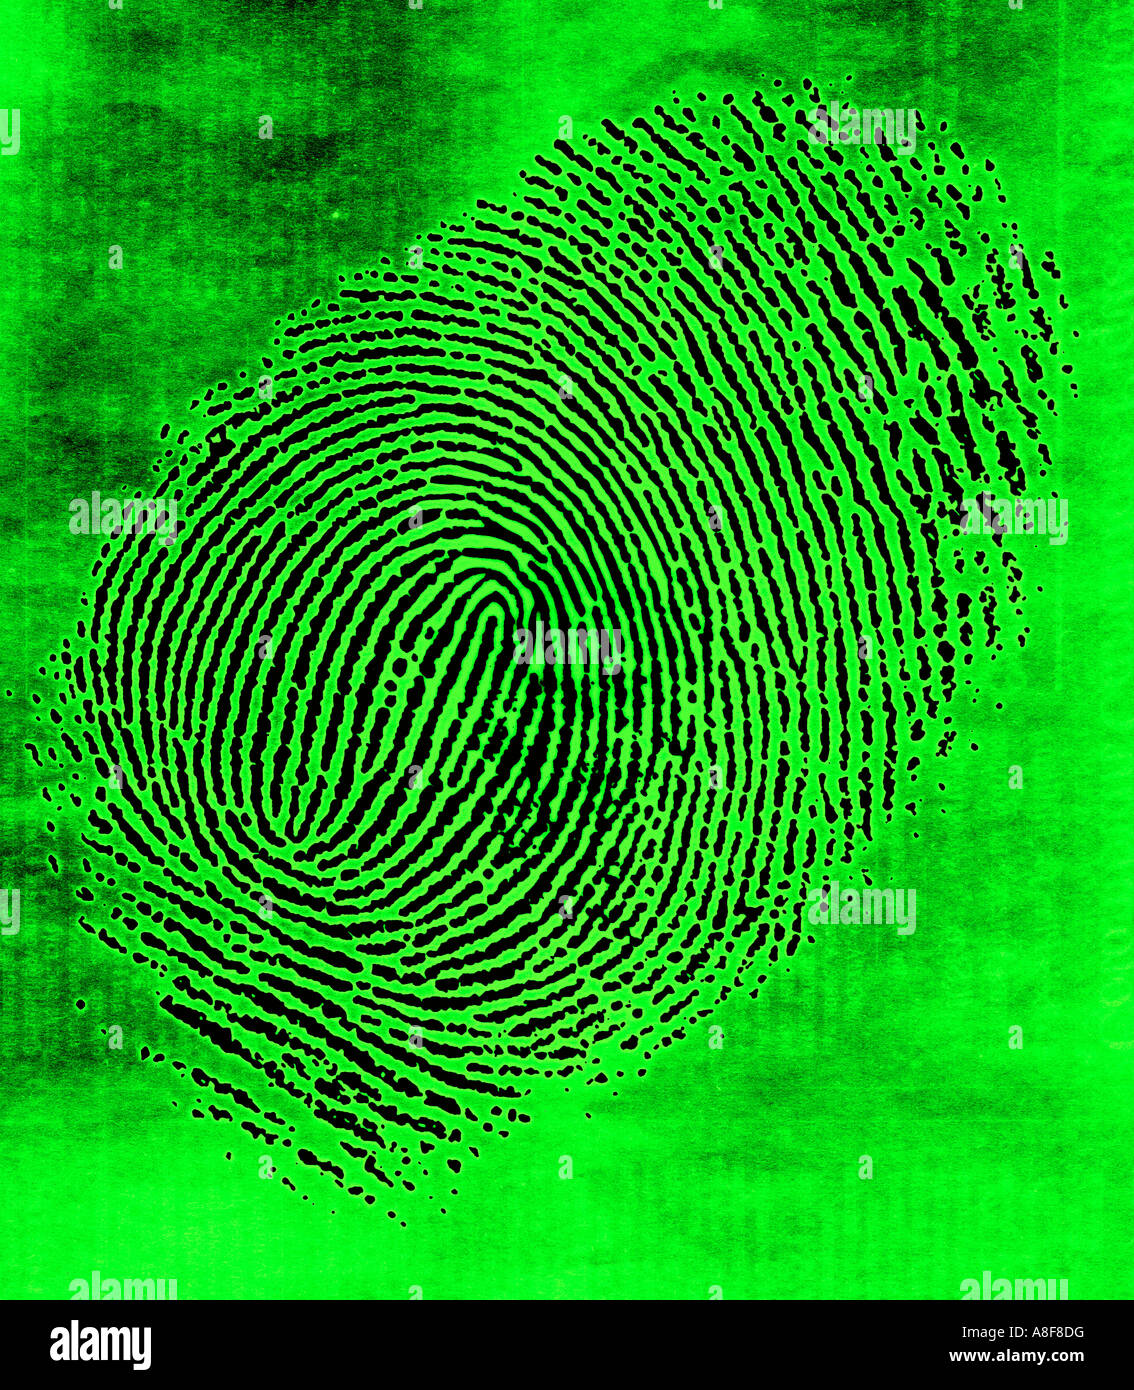 closeup of smudged fingerprint viewed on closed circuit security camera - Stock Image